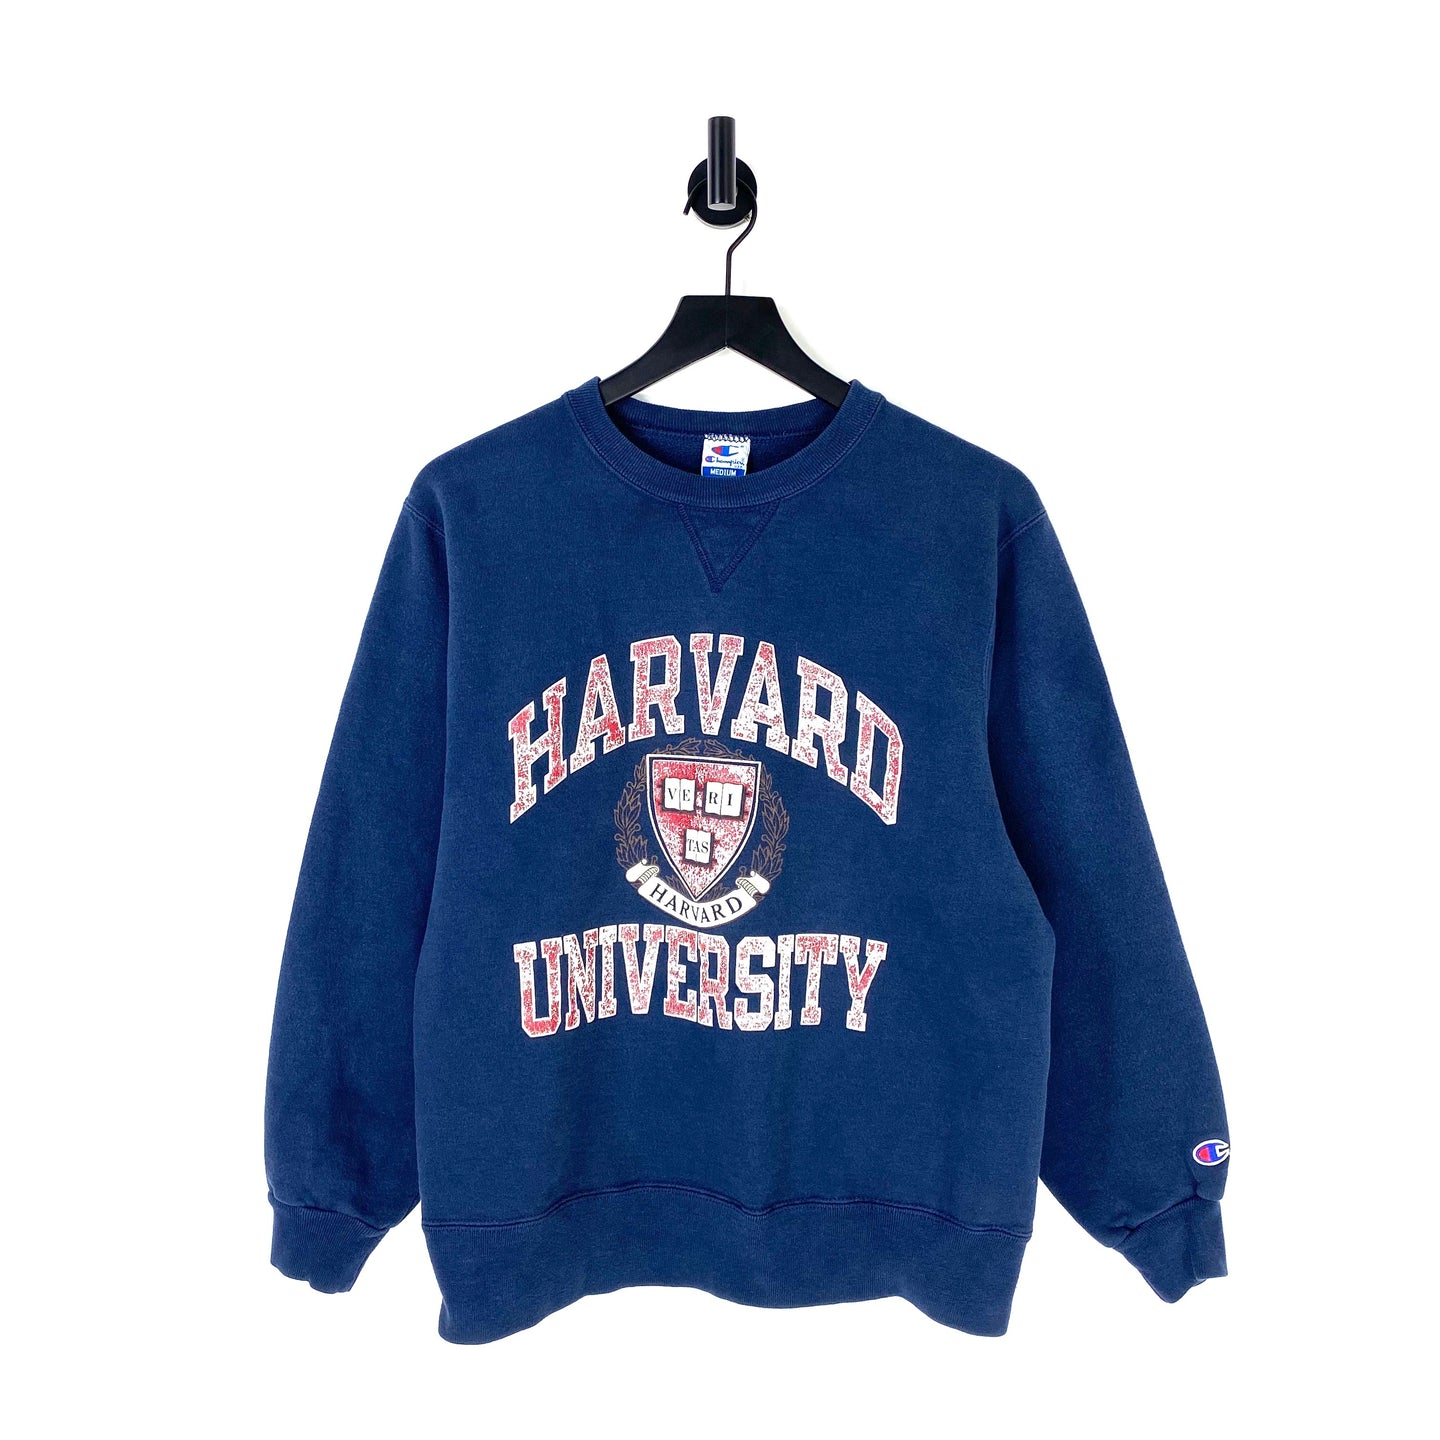 Champion Harvard Sweatshirt - M